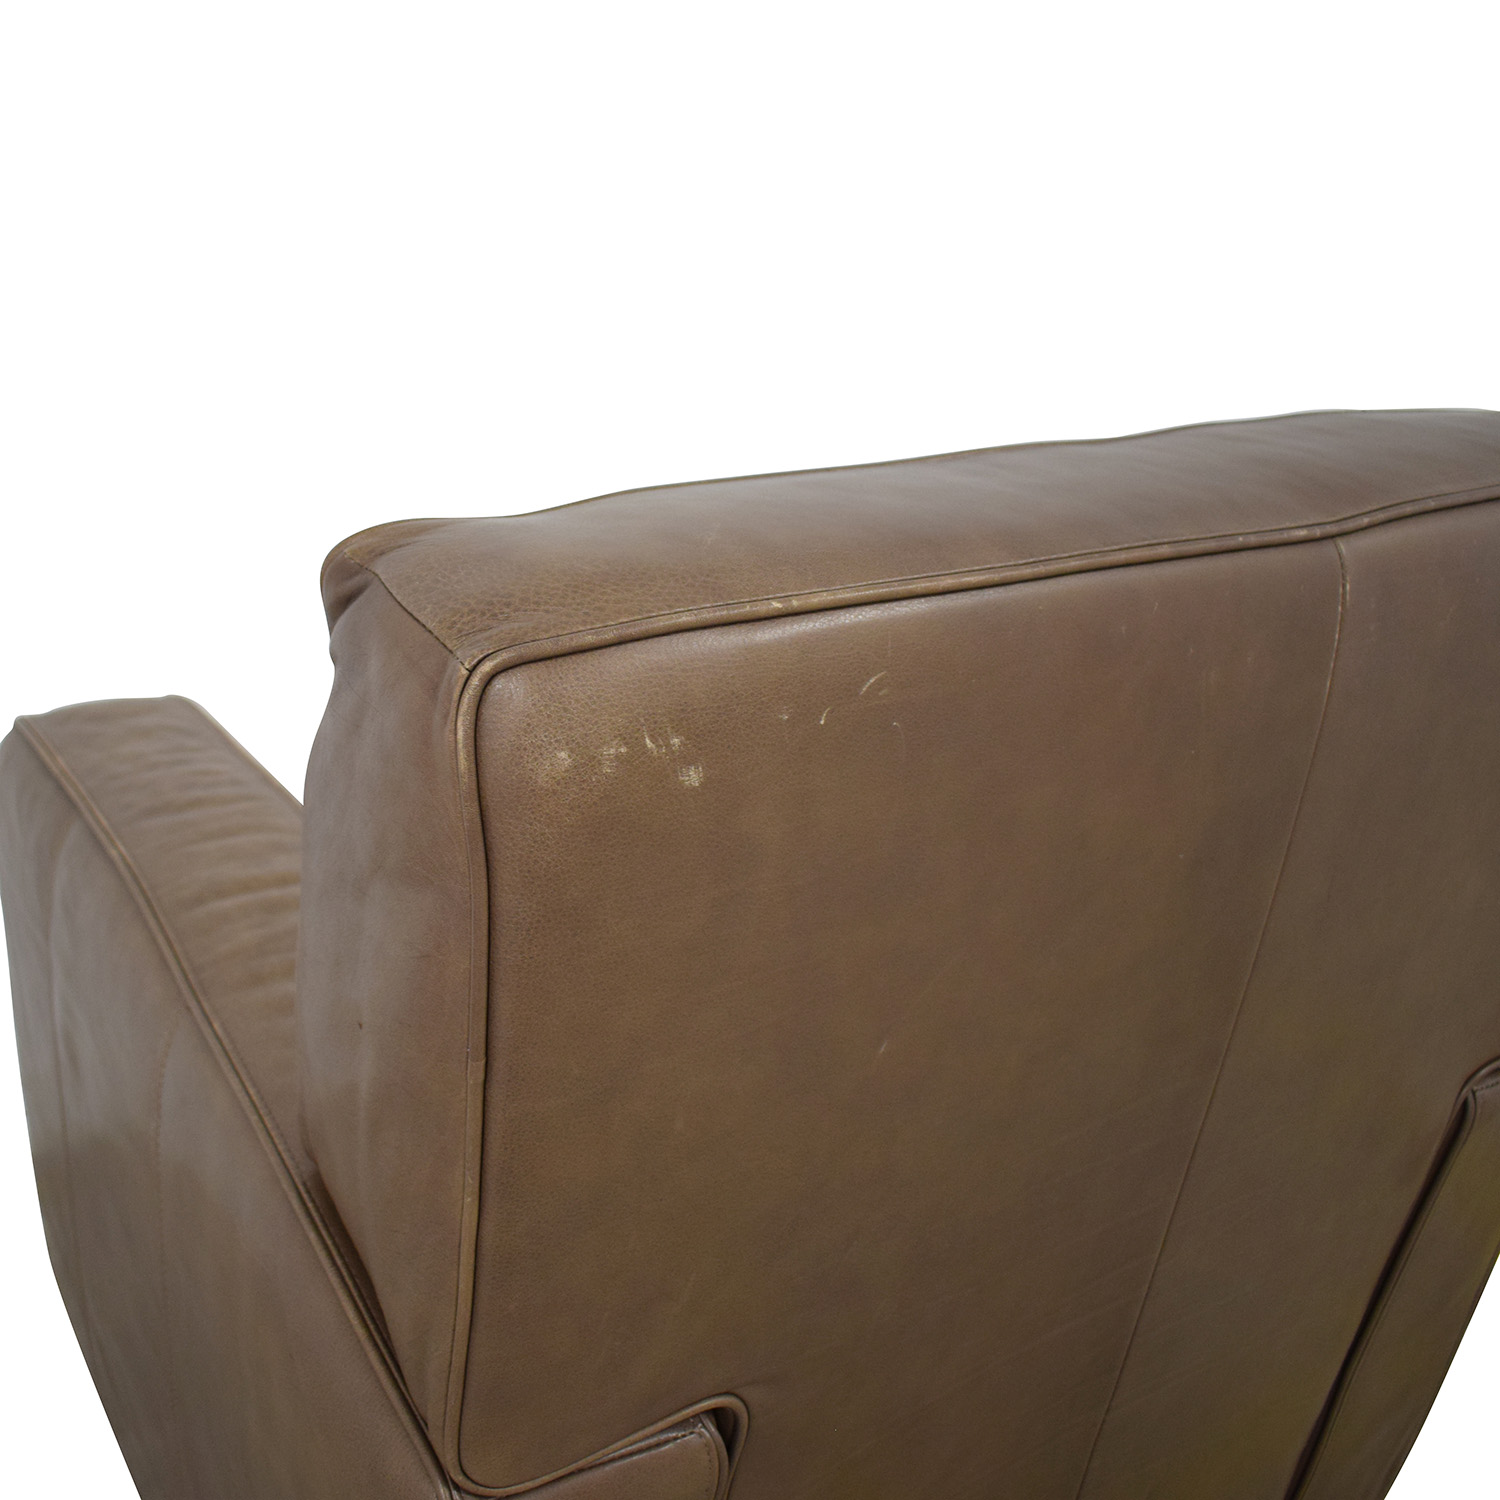 Crate & Barrel Crate & Barrel Leather Recliner Chair pa